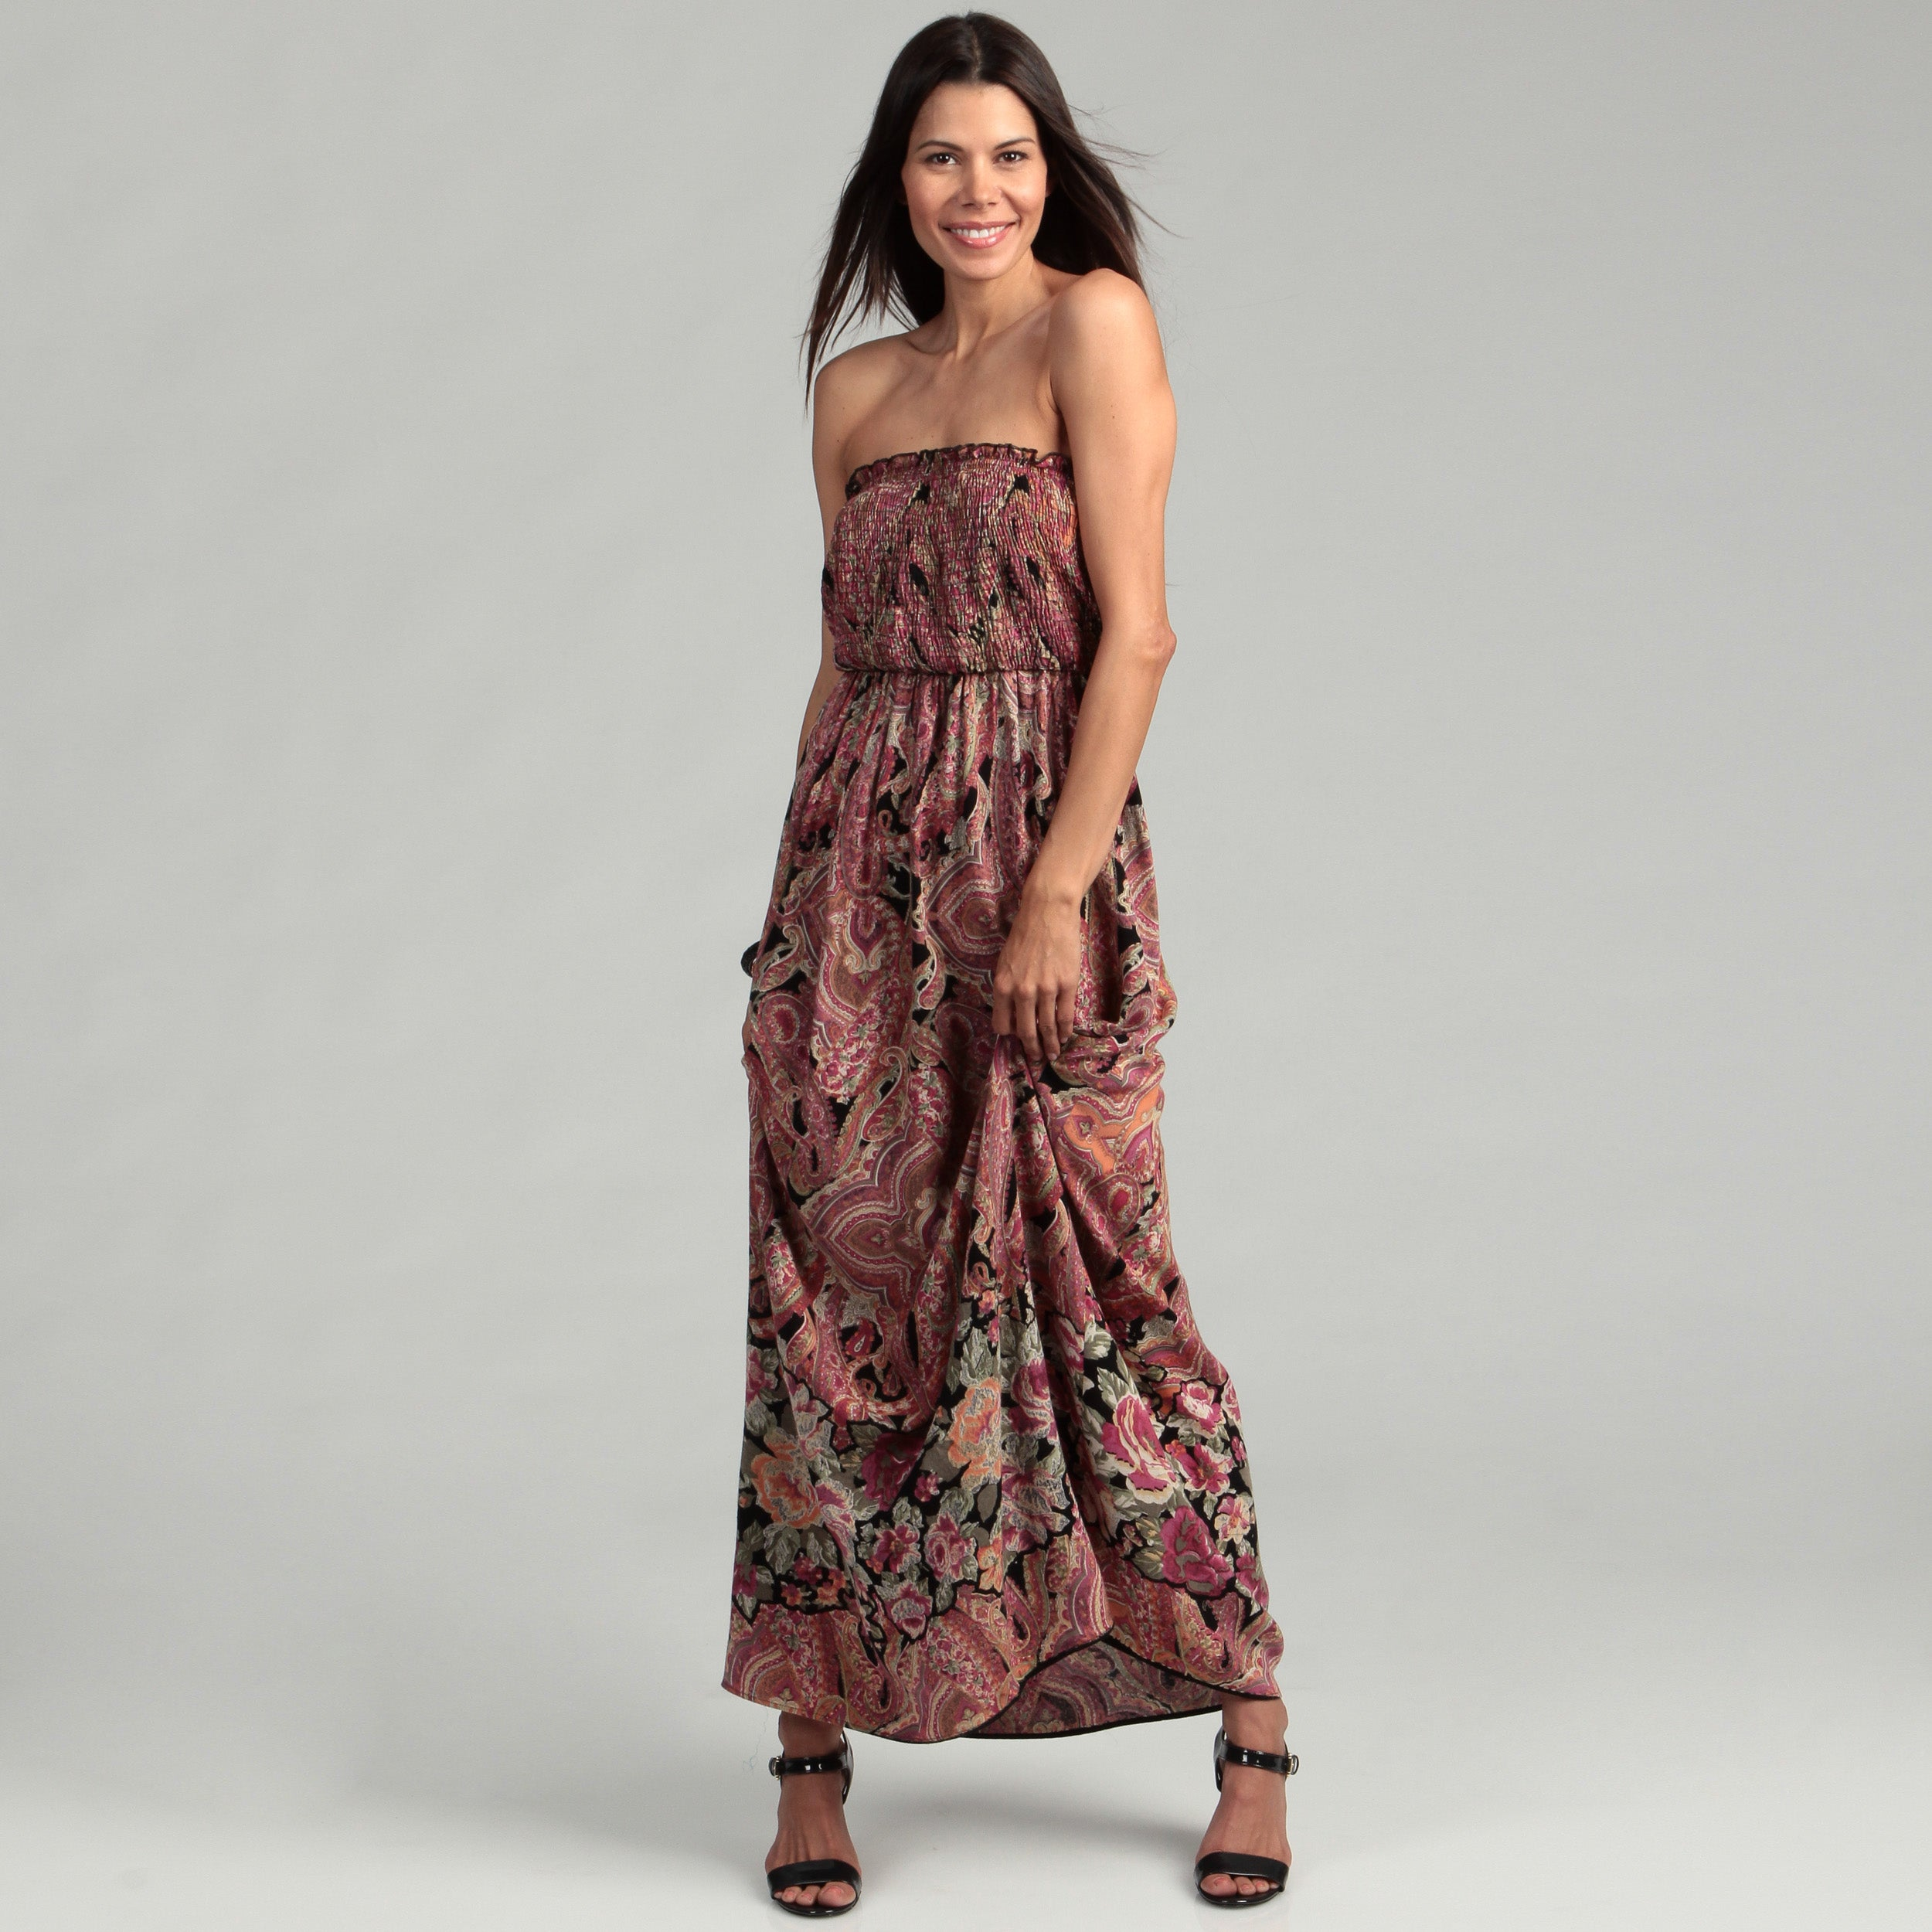 Shop Lola P Women s Coral Smocked Maxi Dress - Free Shipping On Orders Over   45 - Overstock.com - 6663912 a5a1ed6d9